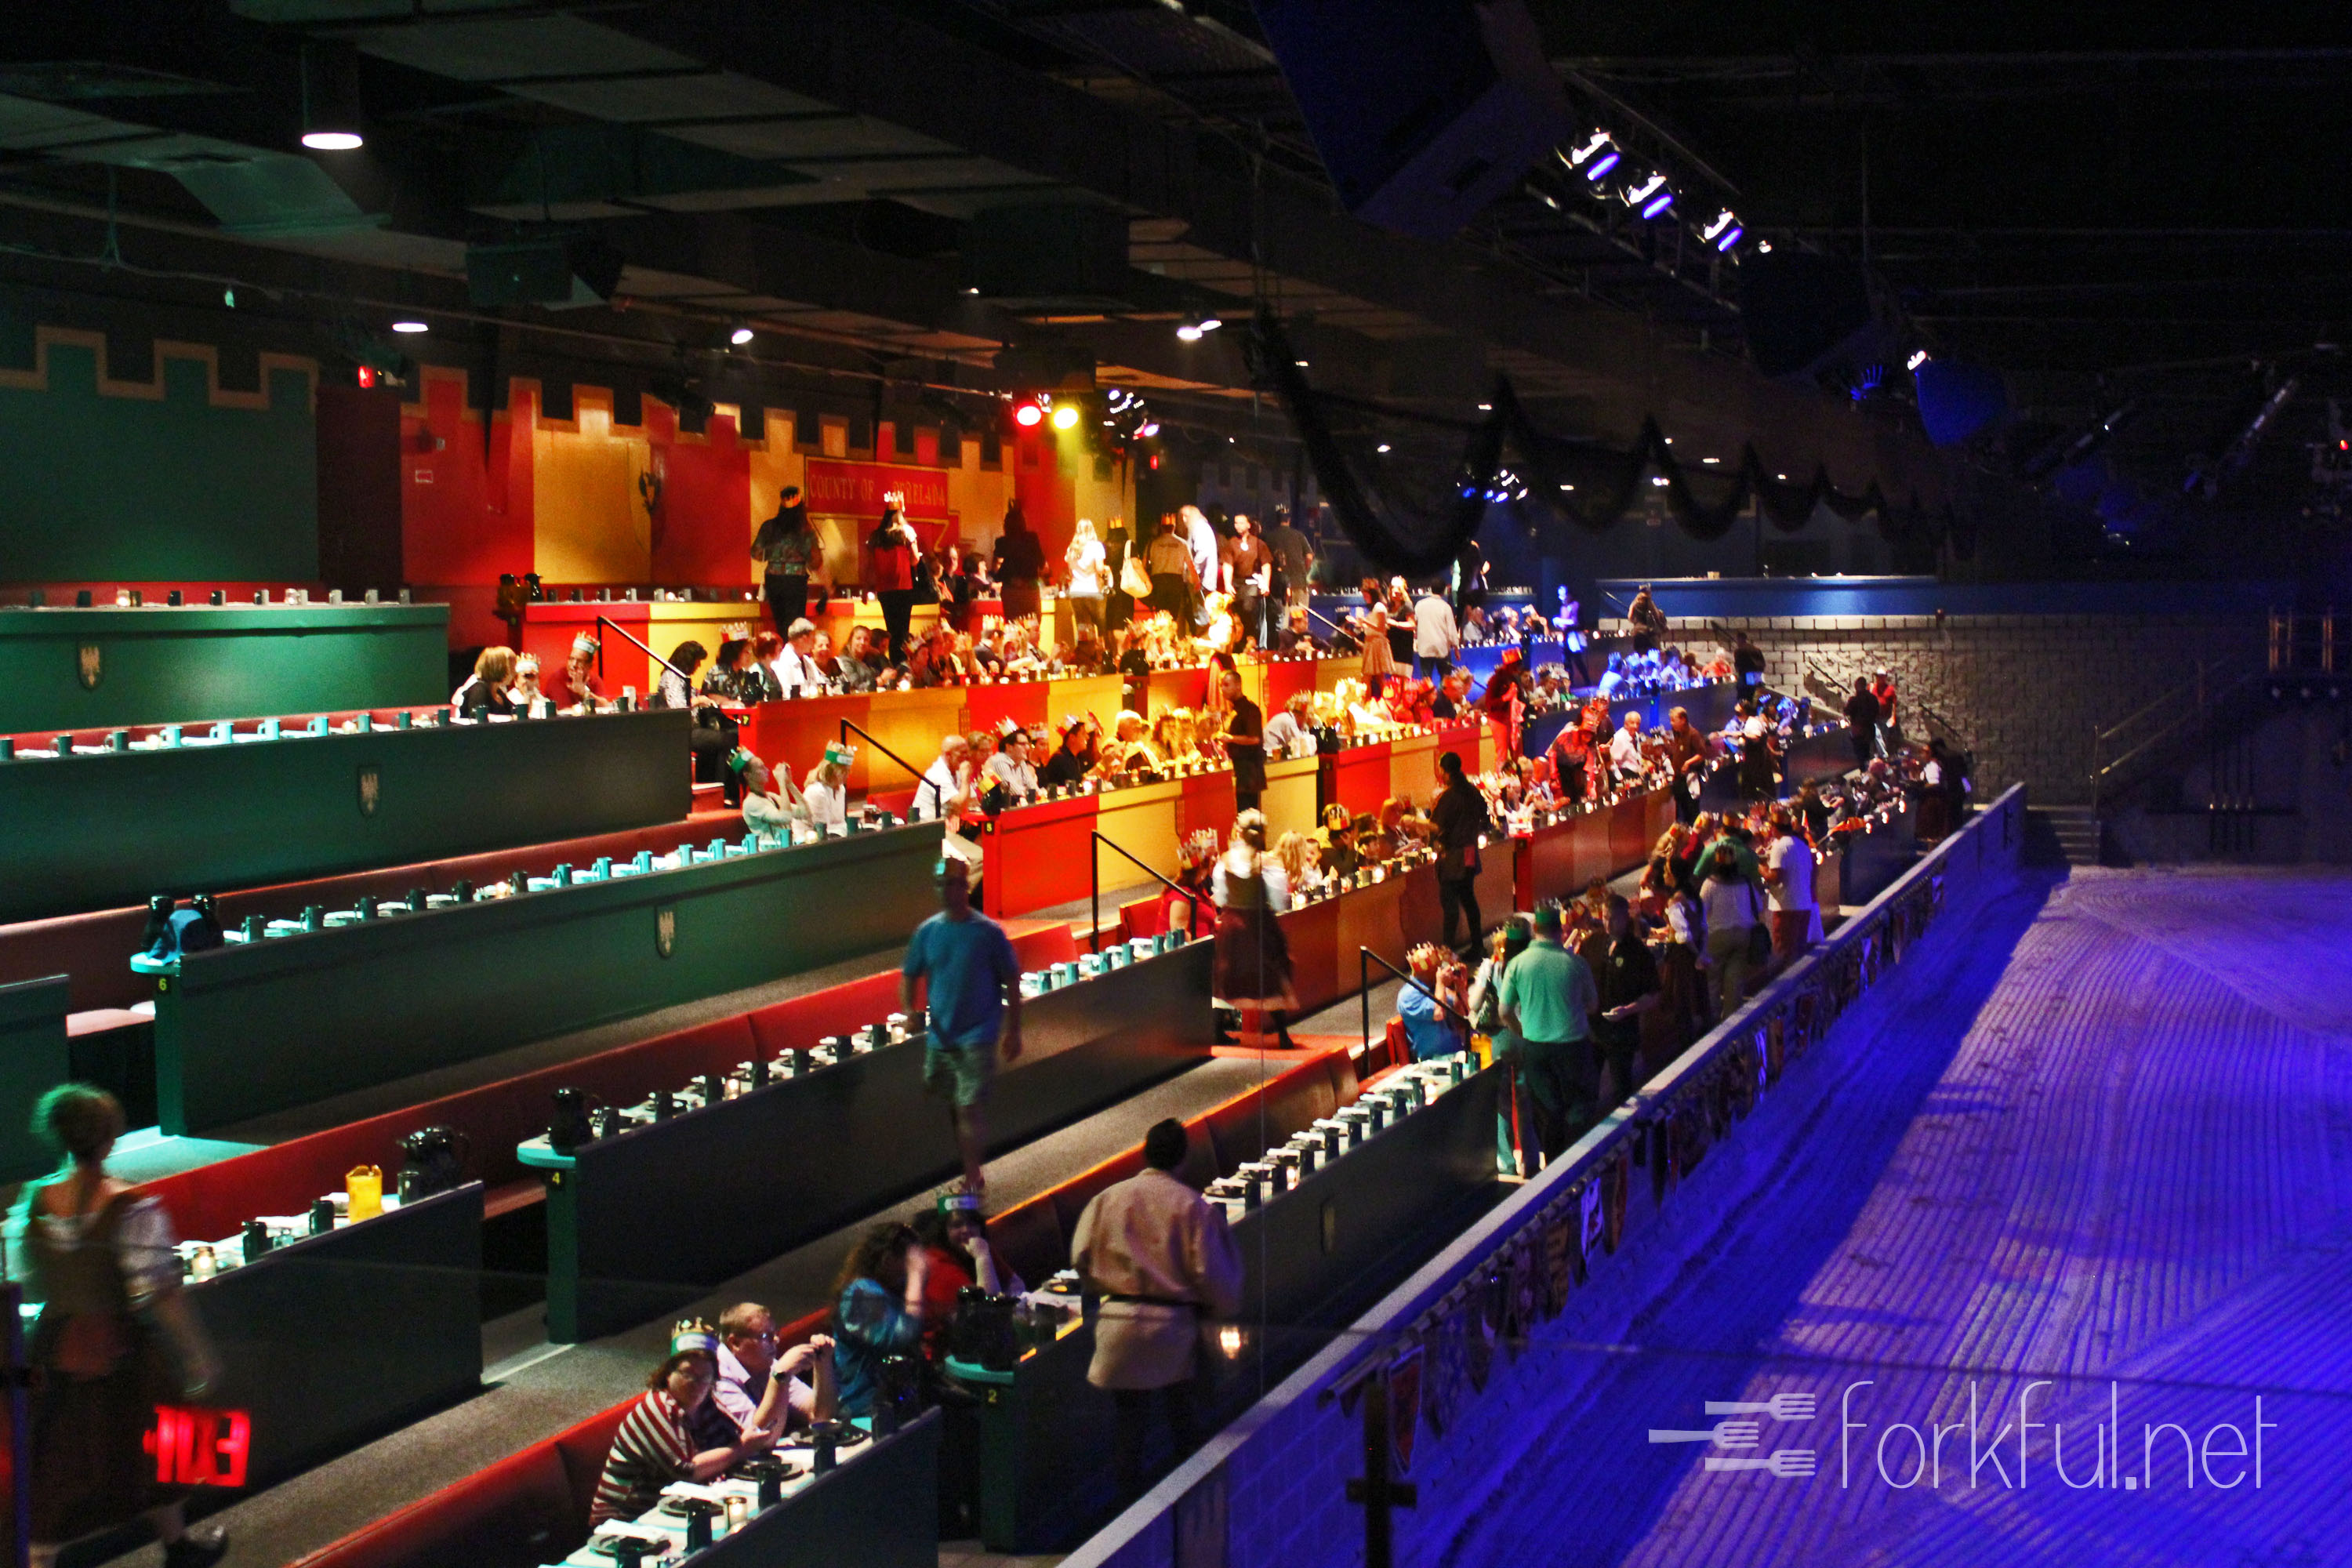 At Medieval Times, armor-clad knights clash for the title of King's Champion in front of a wide-eyed audience that fills the battlefield with cheers and jeers between bites of a four-course dinner. Each two-hour tournament channels the pageantry and spectacle of 11th-century Spain, pitting six competitors against each other inside a spacious arena for the honor of earning the title of champion Price: $